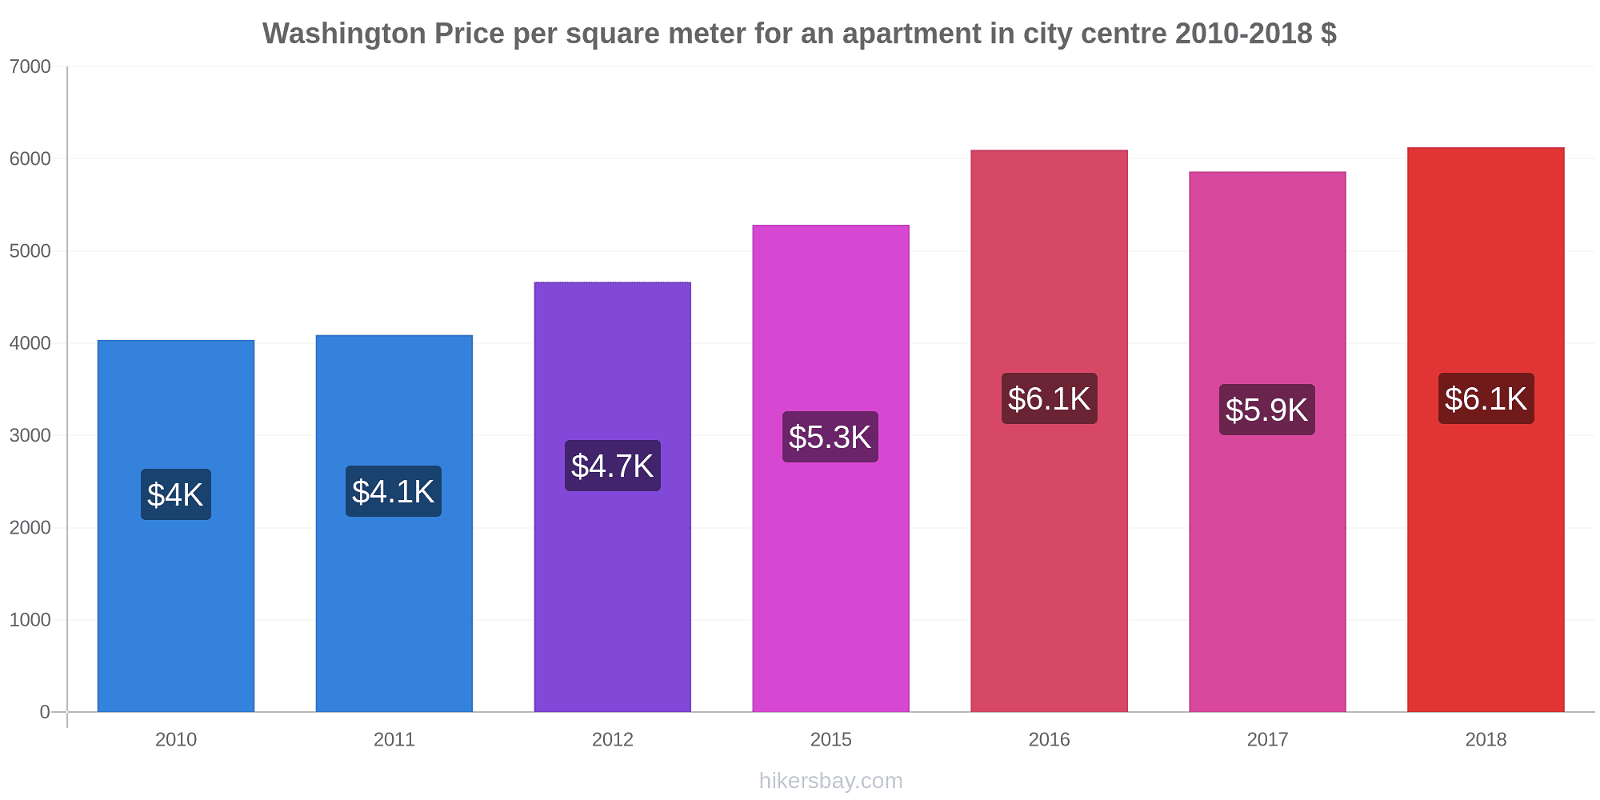 Washington price changes Price per square meter for an apartment in city centre hikersbay.com